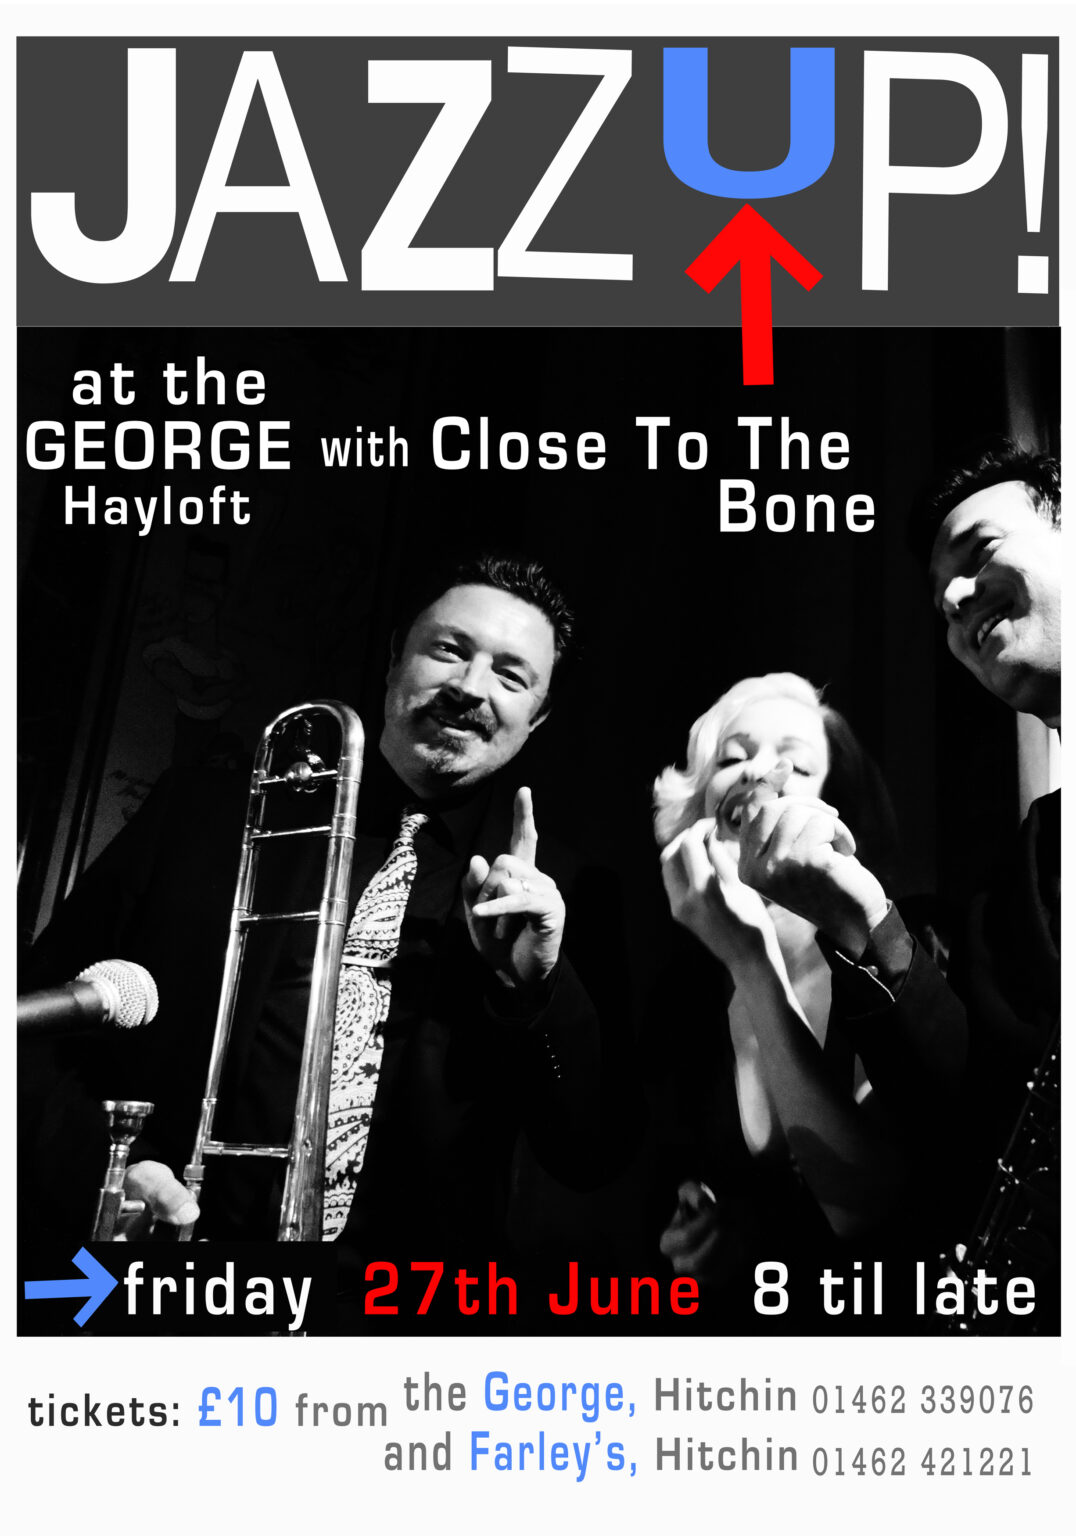 JazzUP Early days at The George June 2014 poster before Del Woodward design.